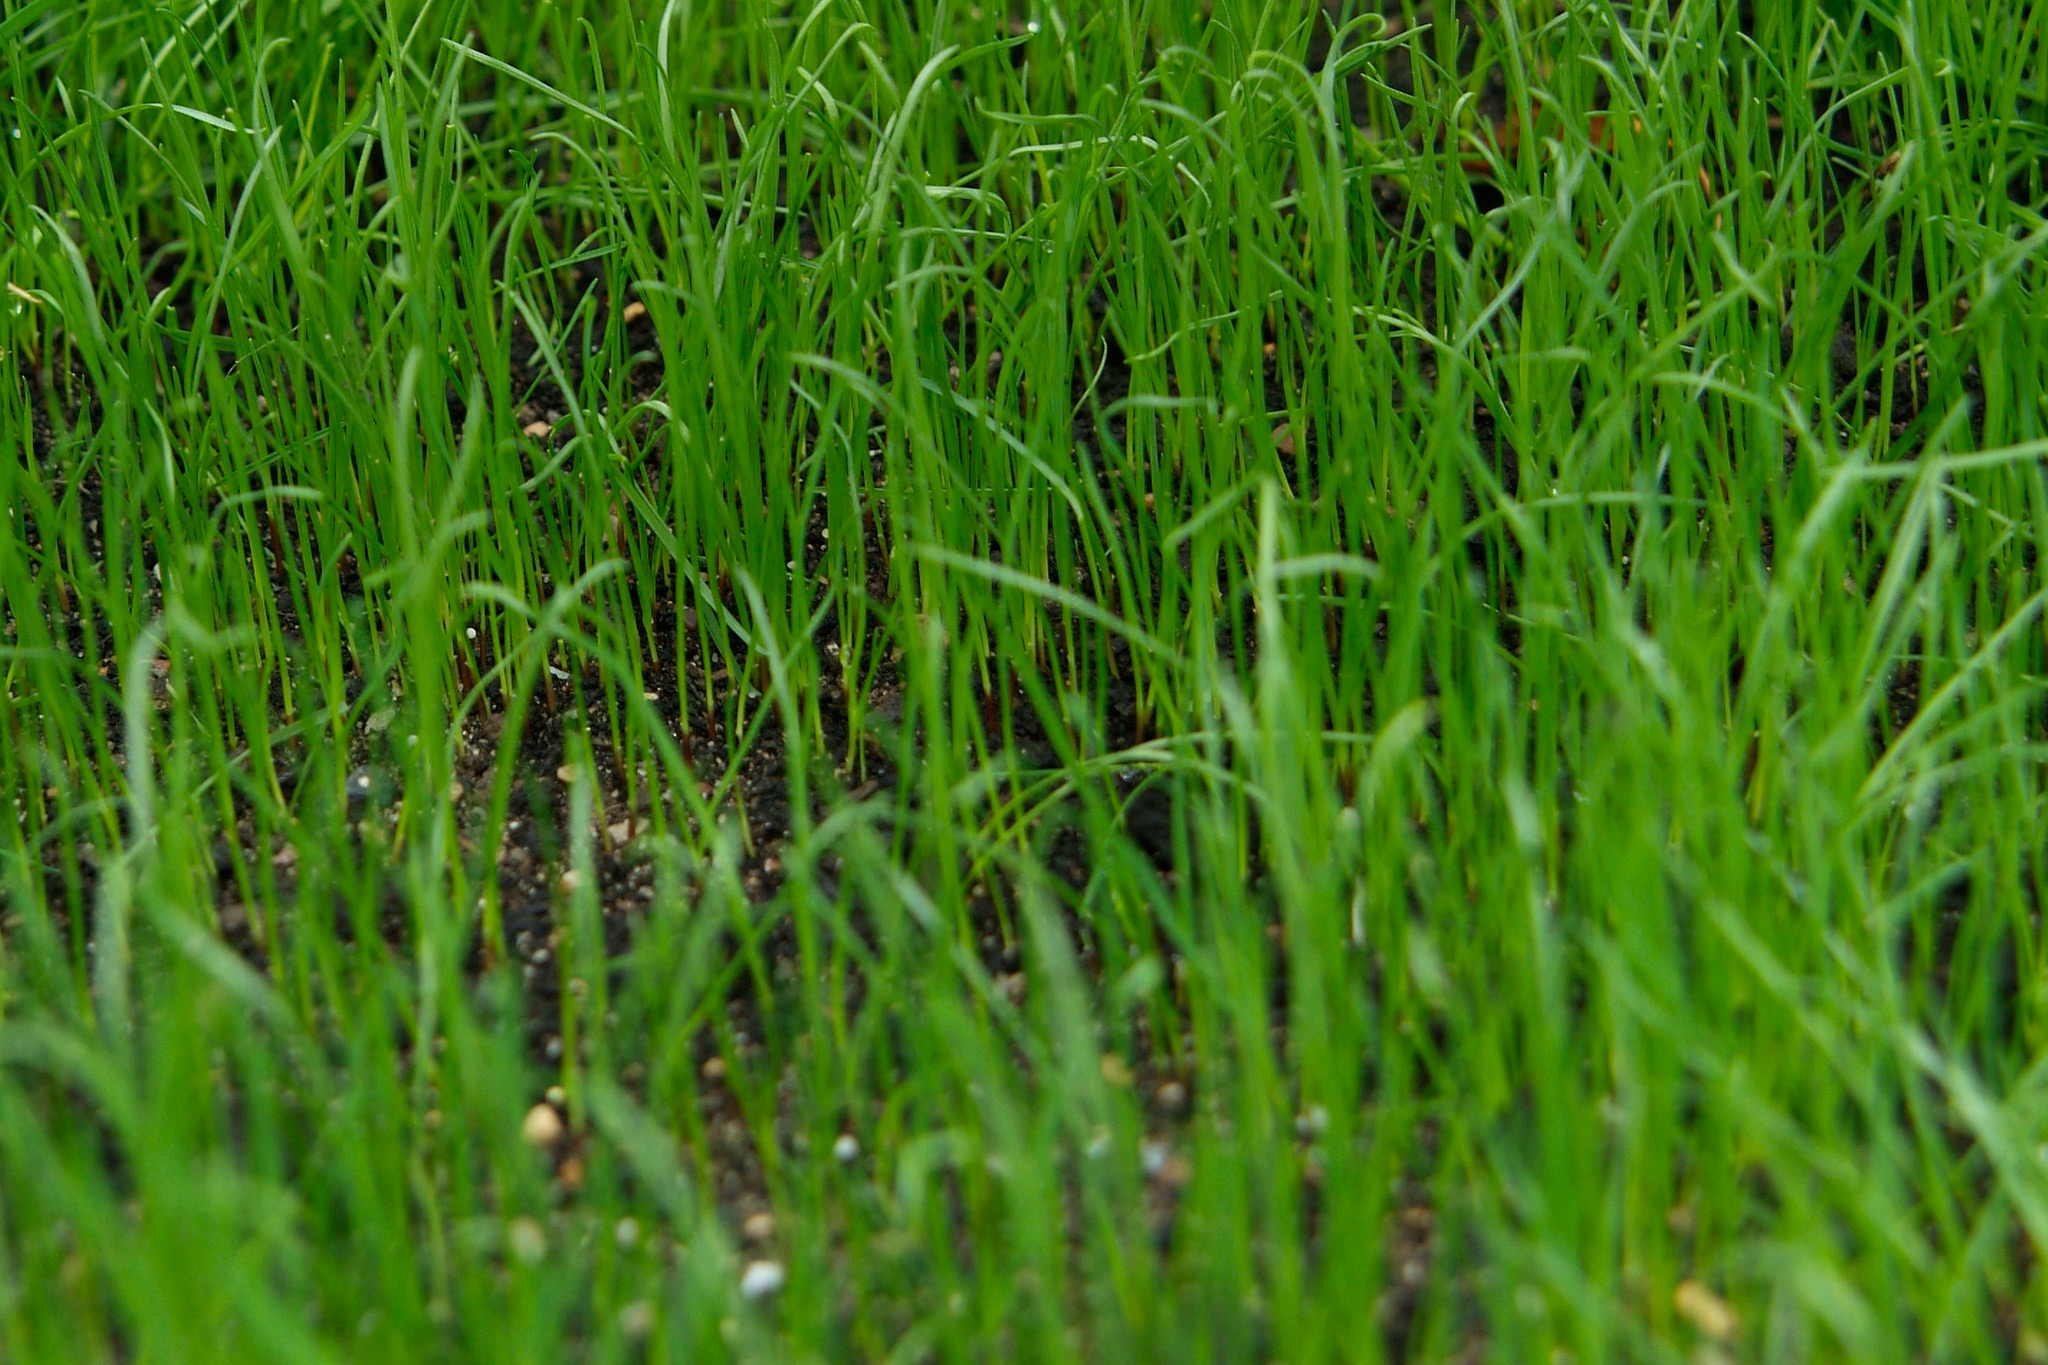 A lawn grown from seed